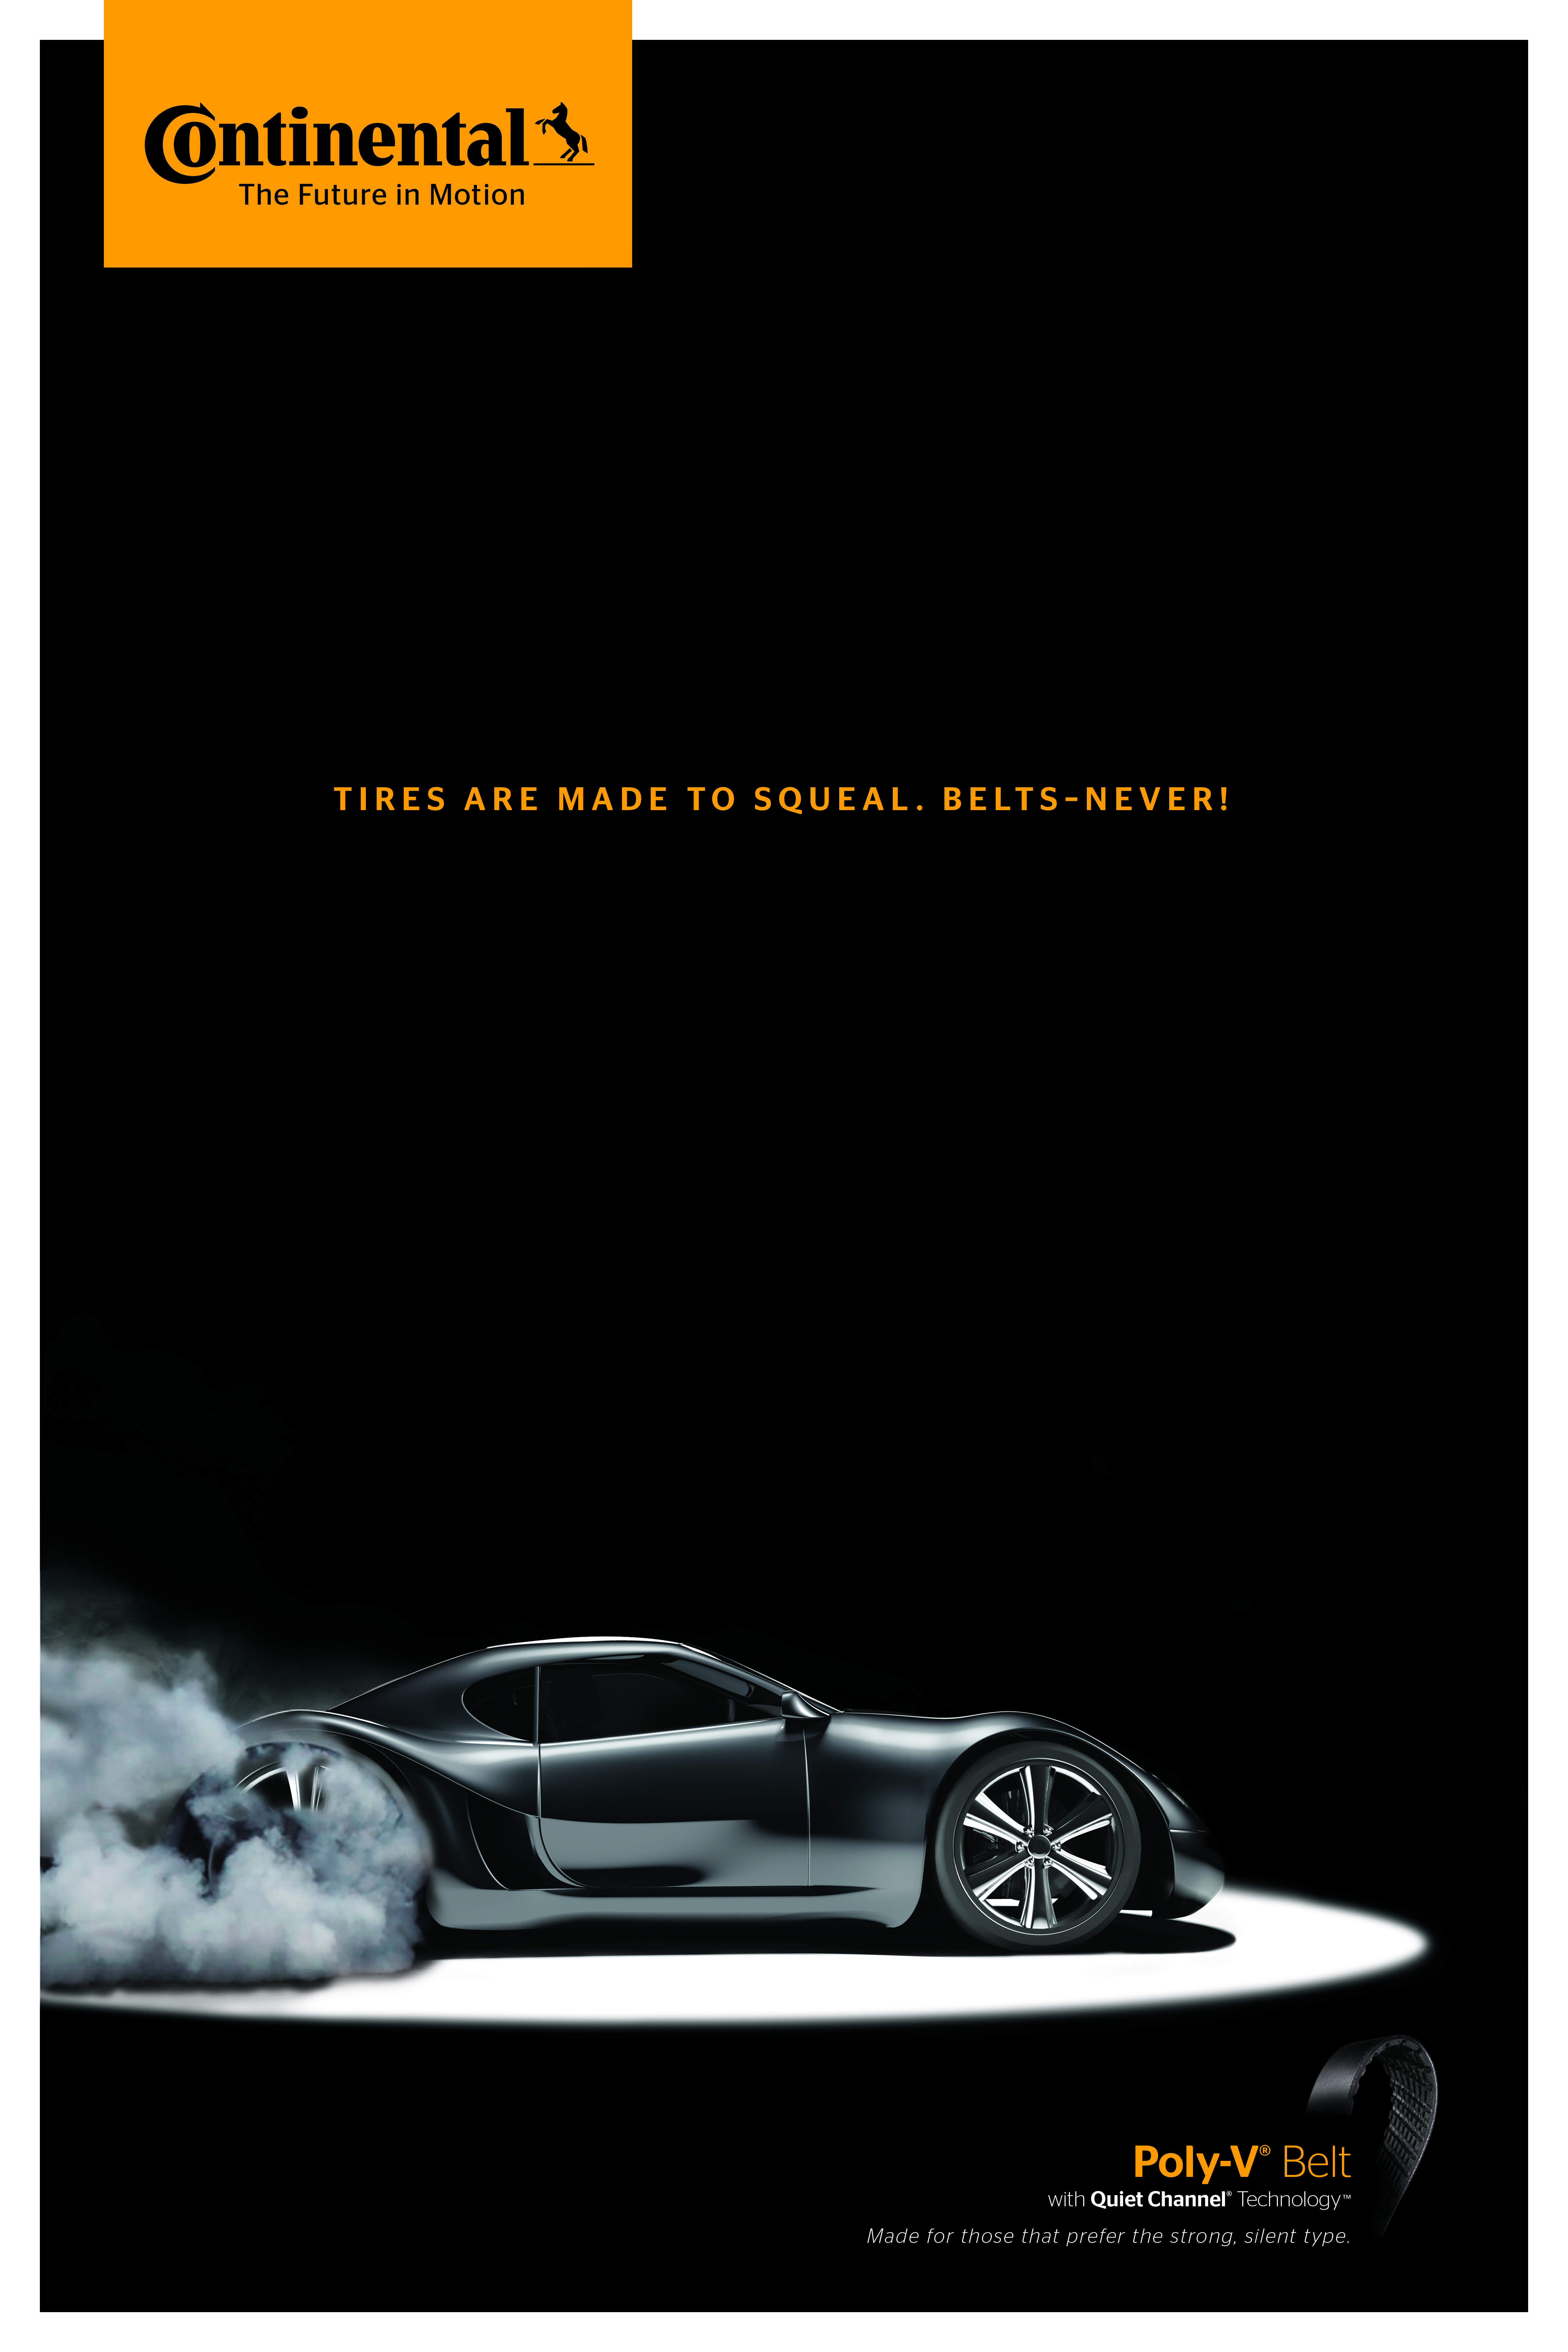 Continental Print Advert By Geometry Global Tires Ads Of The World - Continental global